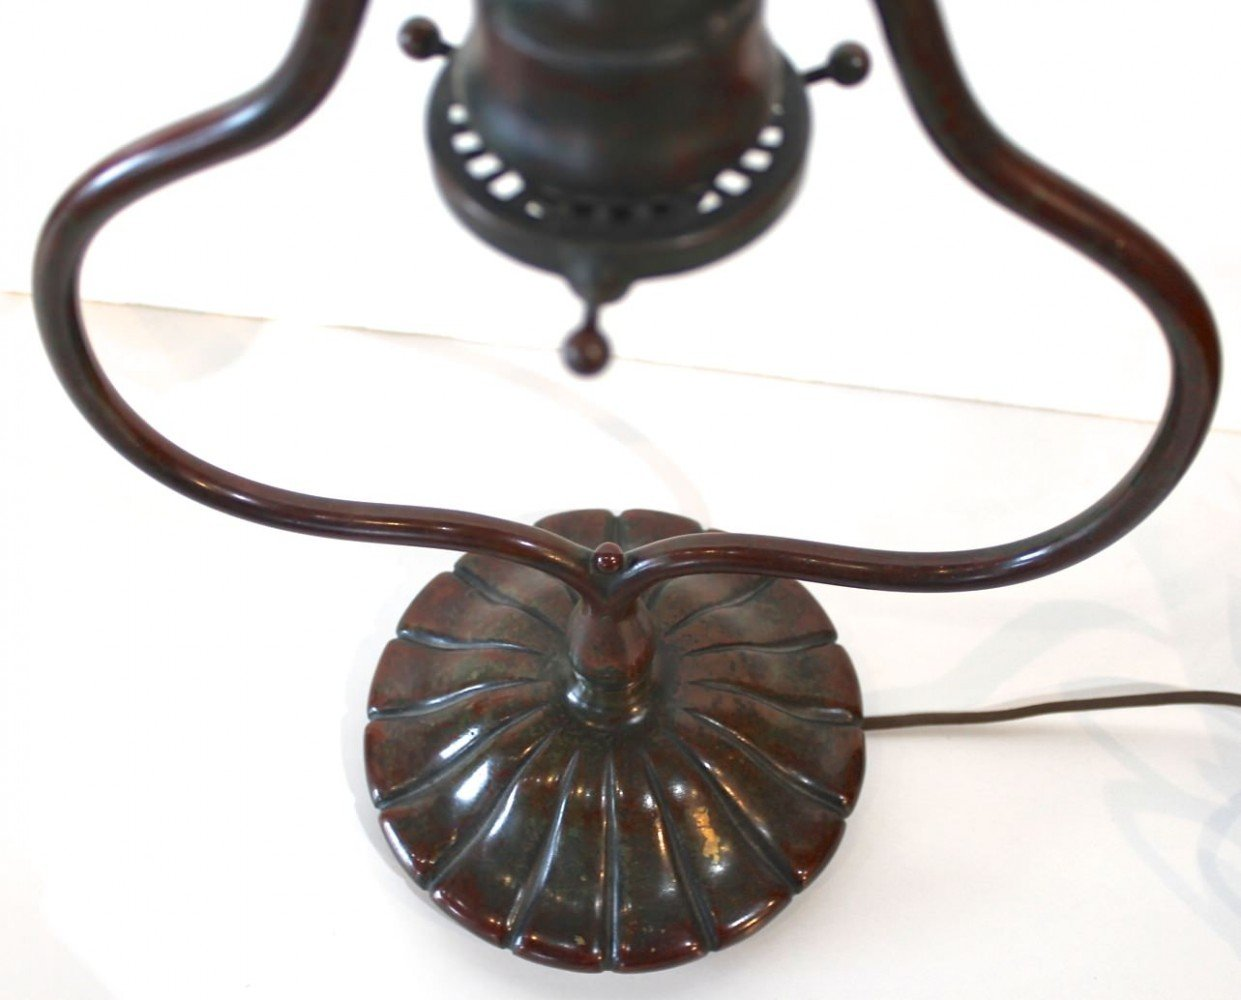 Tiffany Studios Bronze Harp Form Desk Lamp Base by Tiffany Studios